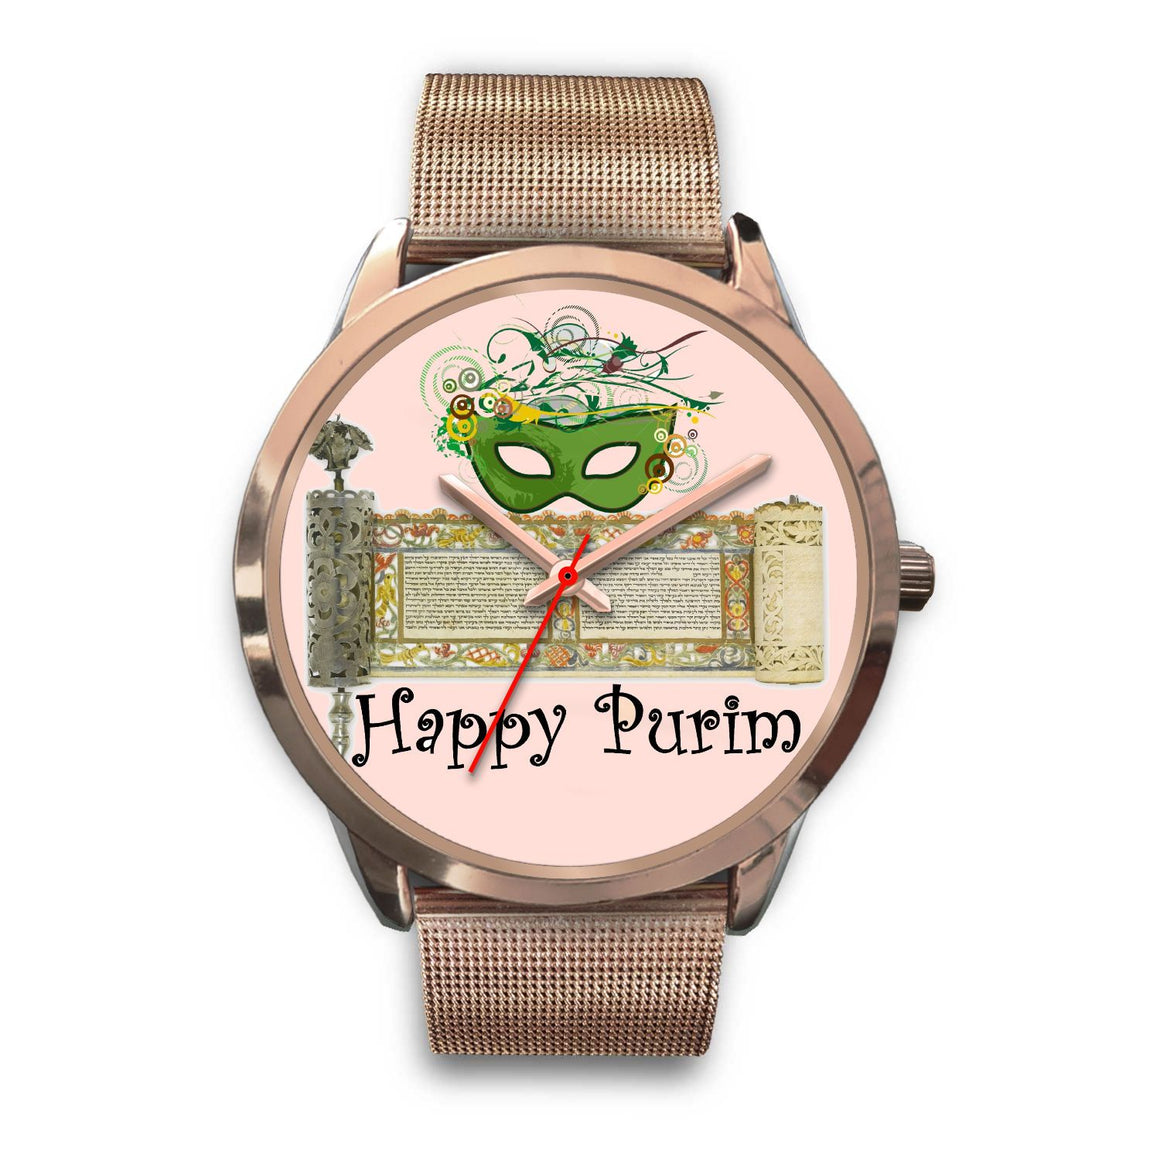 Jewish Purim Gift Watch Rose Gold Purim Timepiece Rose Gold Watch Mens 40mm Rose Gold Metal Link